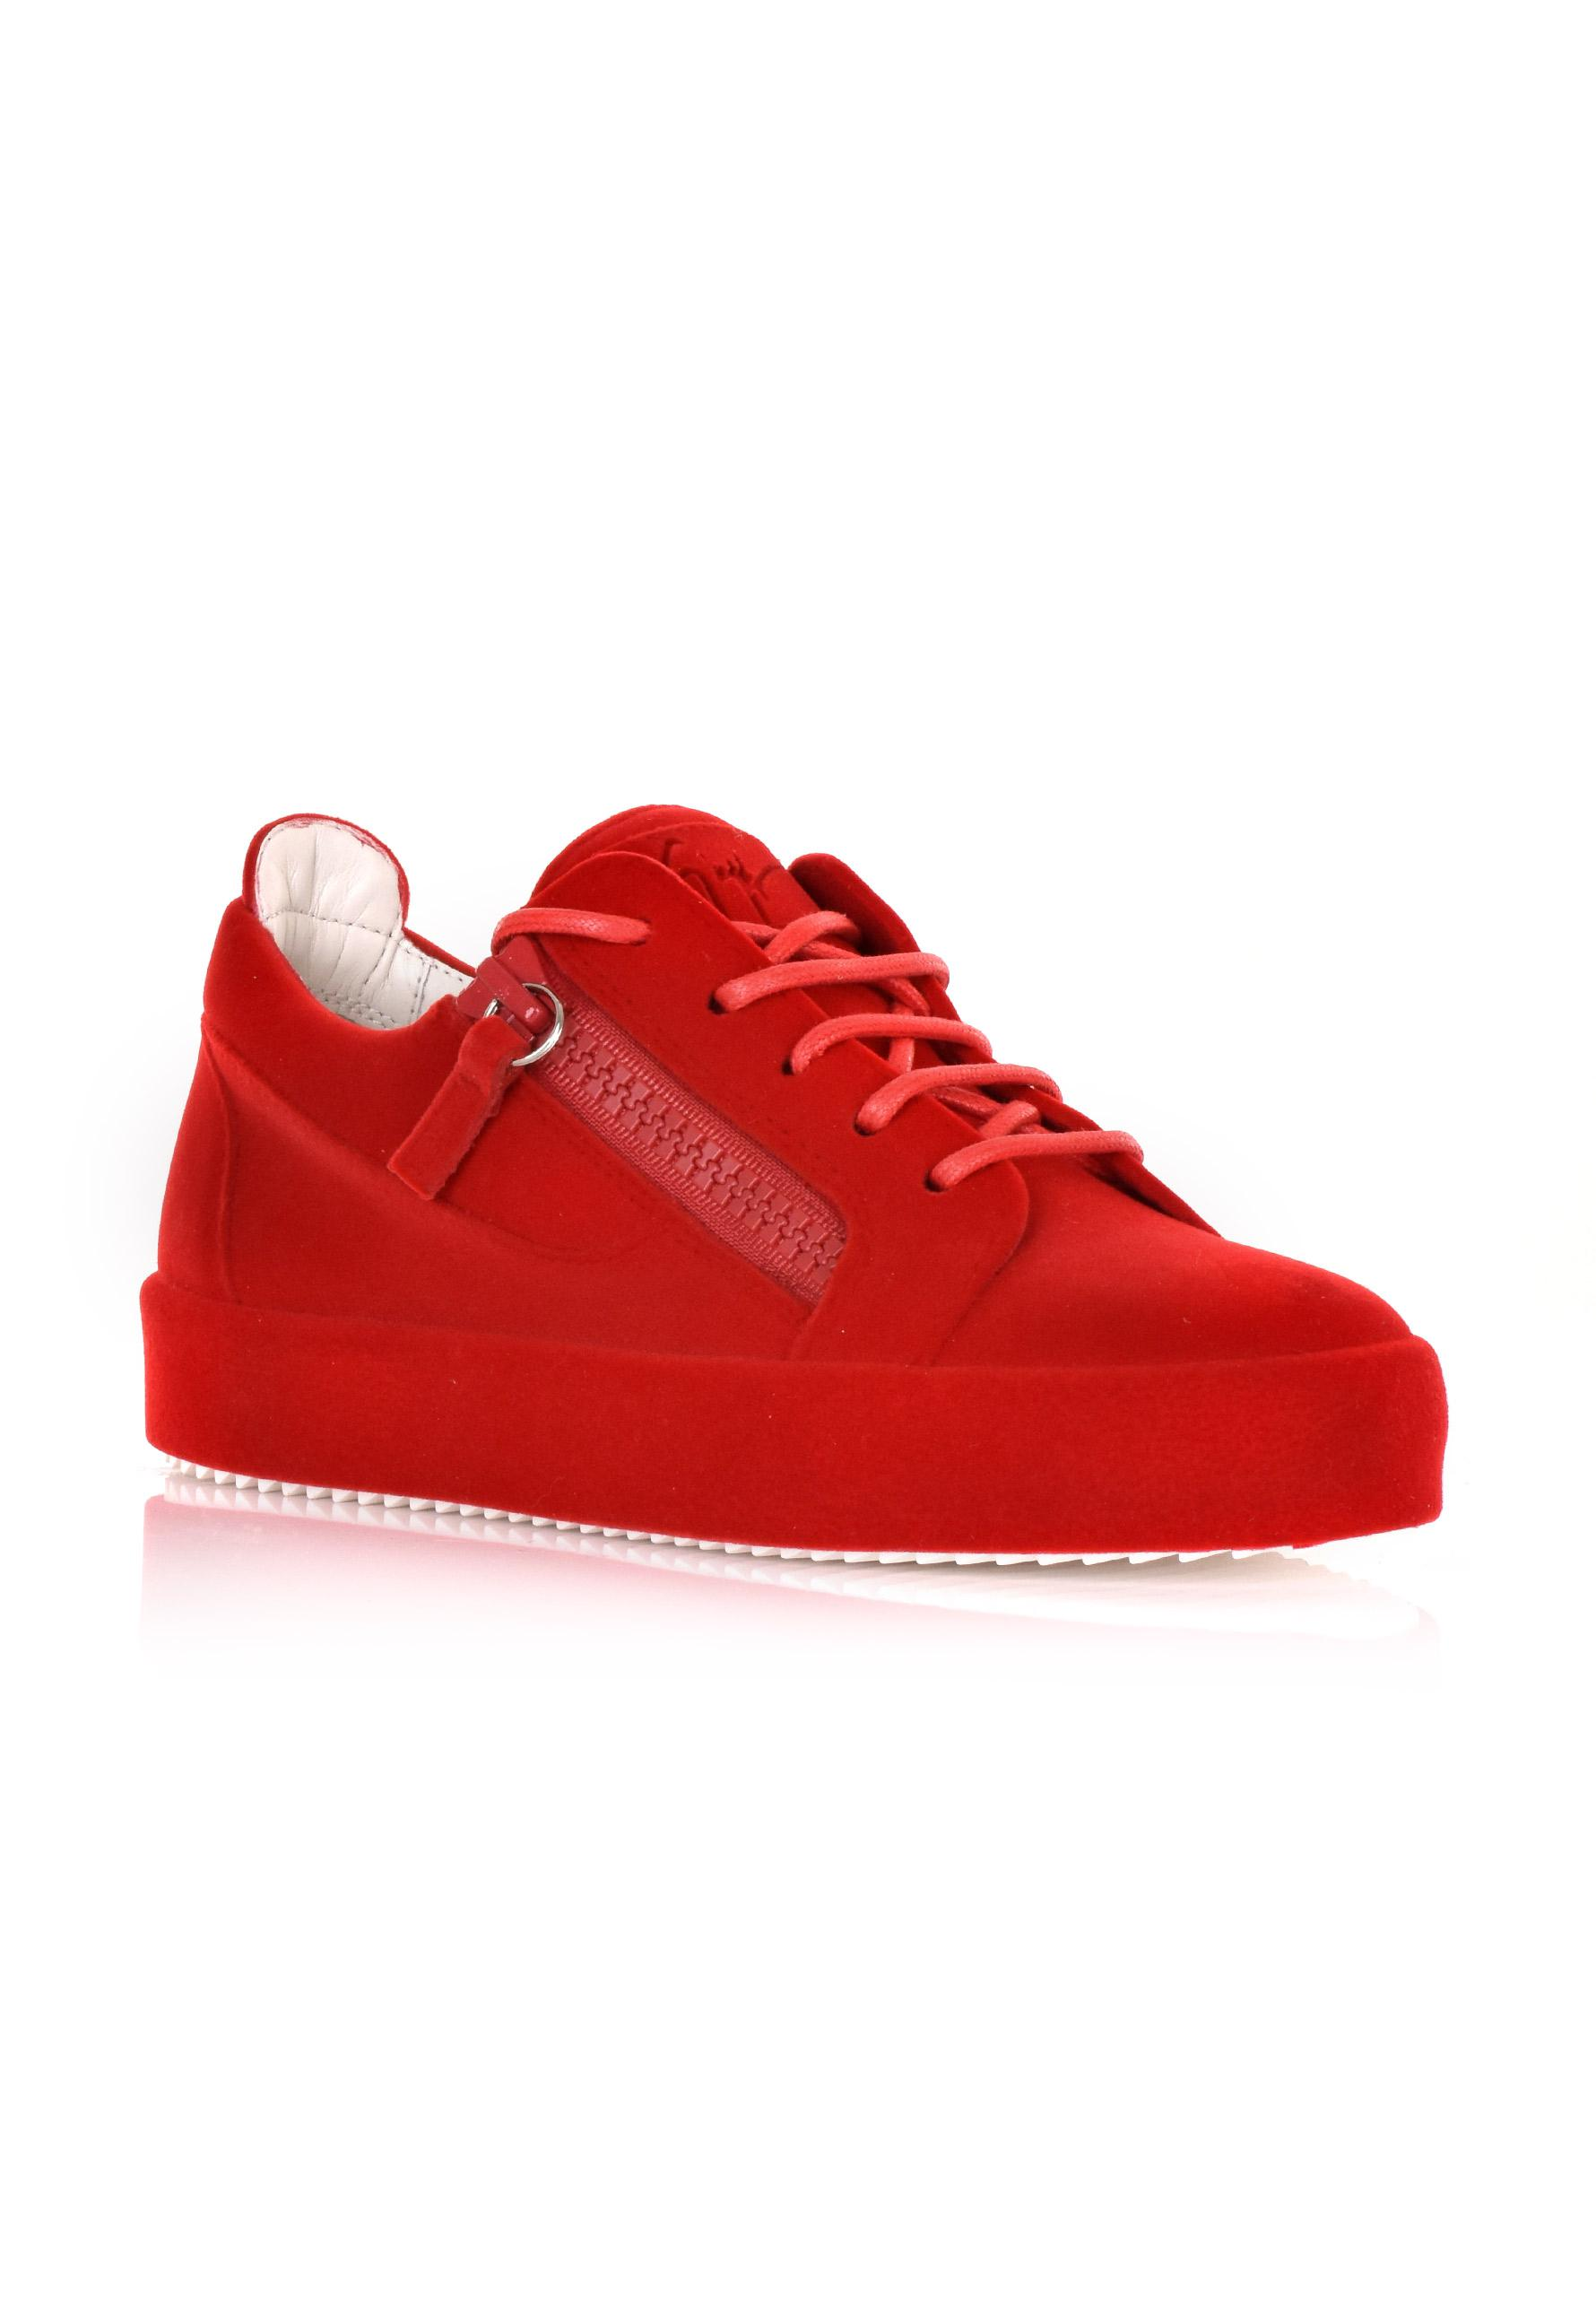 d5a76a07839f9 Giuseppe Zanotti Women's Lace Up Flocked Sneakers Red in Red for Men ...